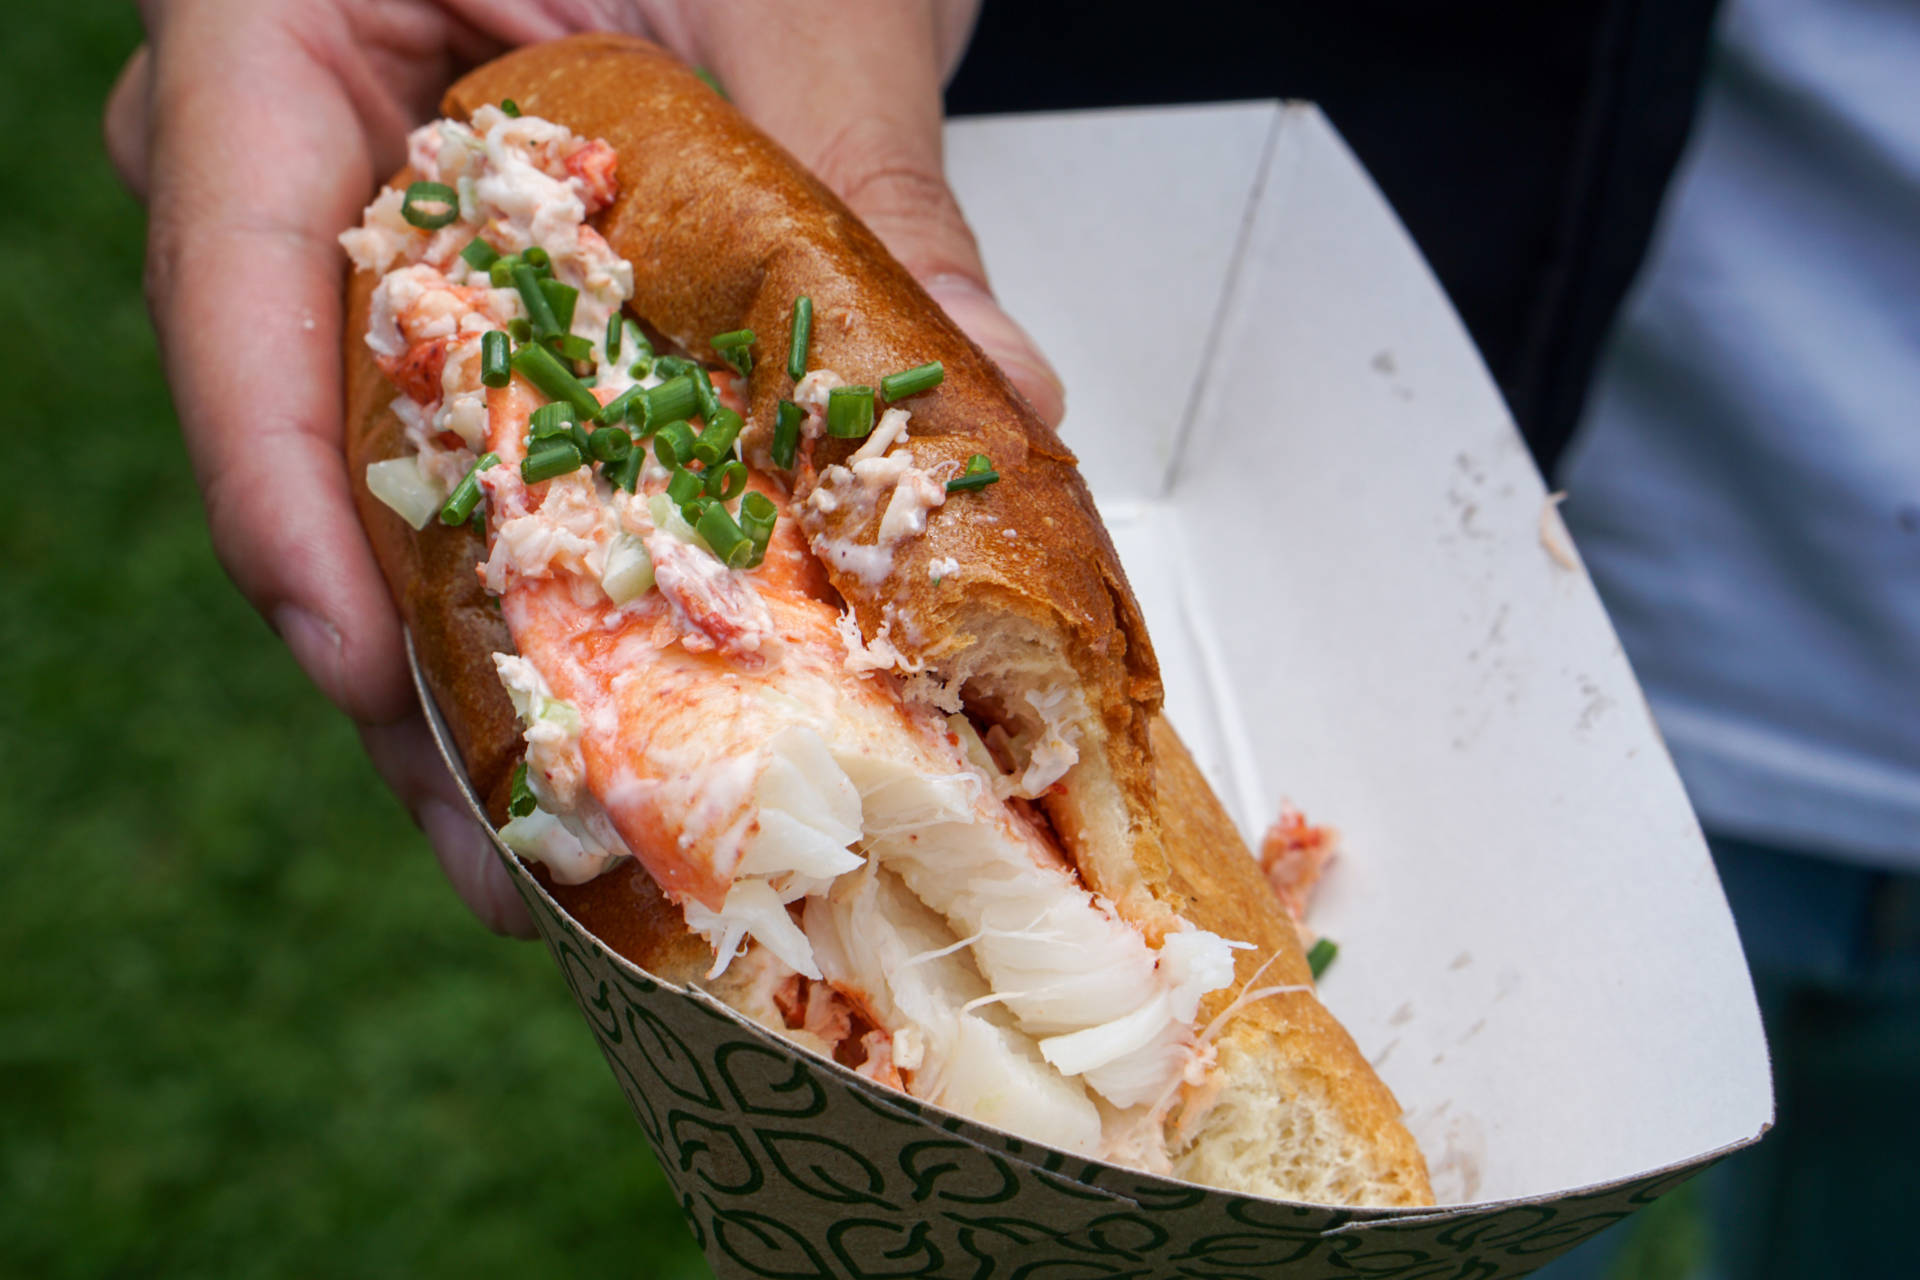 Devouring this Woodhouse Fish Co. lobster roll